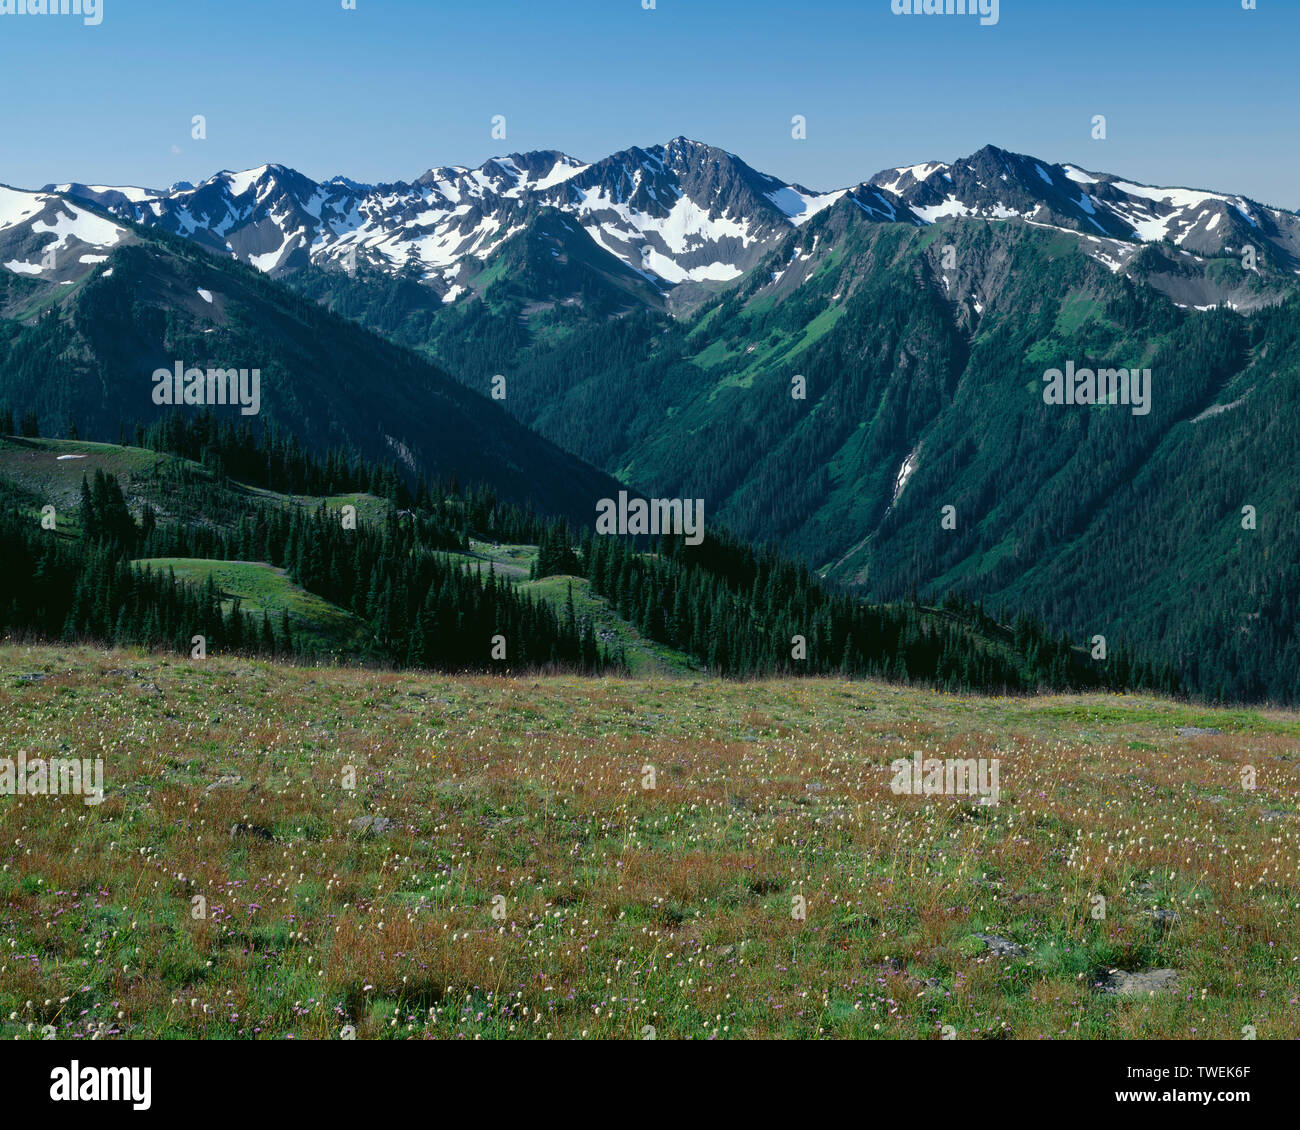 USA, Washington, Olympic National Park, View from near Obstruction Peak towards Lillian River Valley and surrounding peaks of the Olympic Mountains. - Stock Image